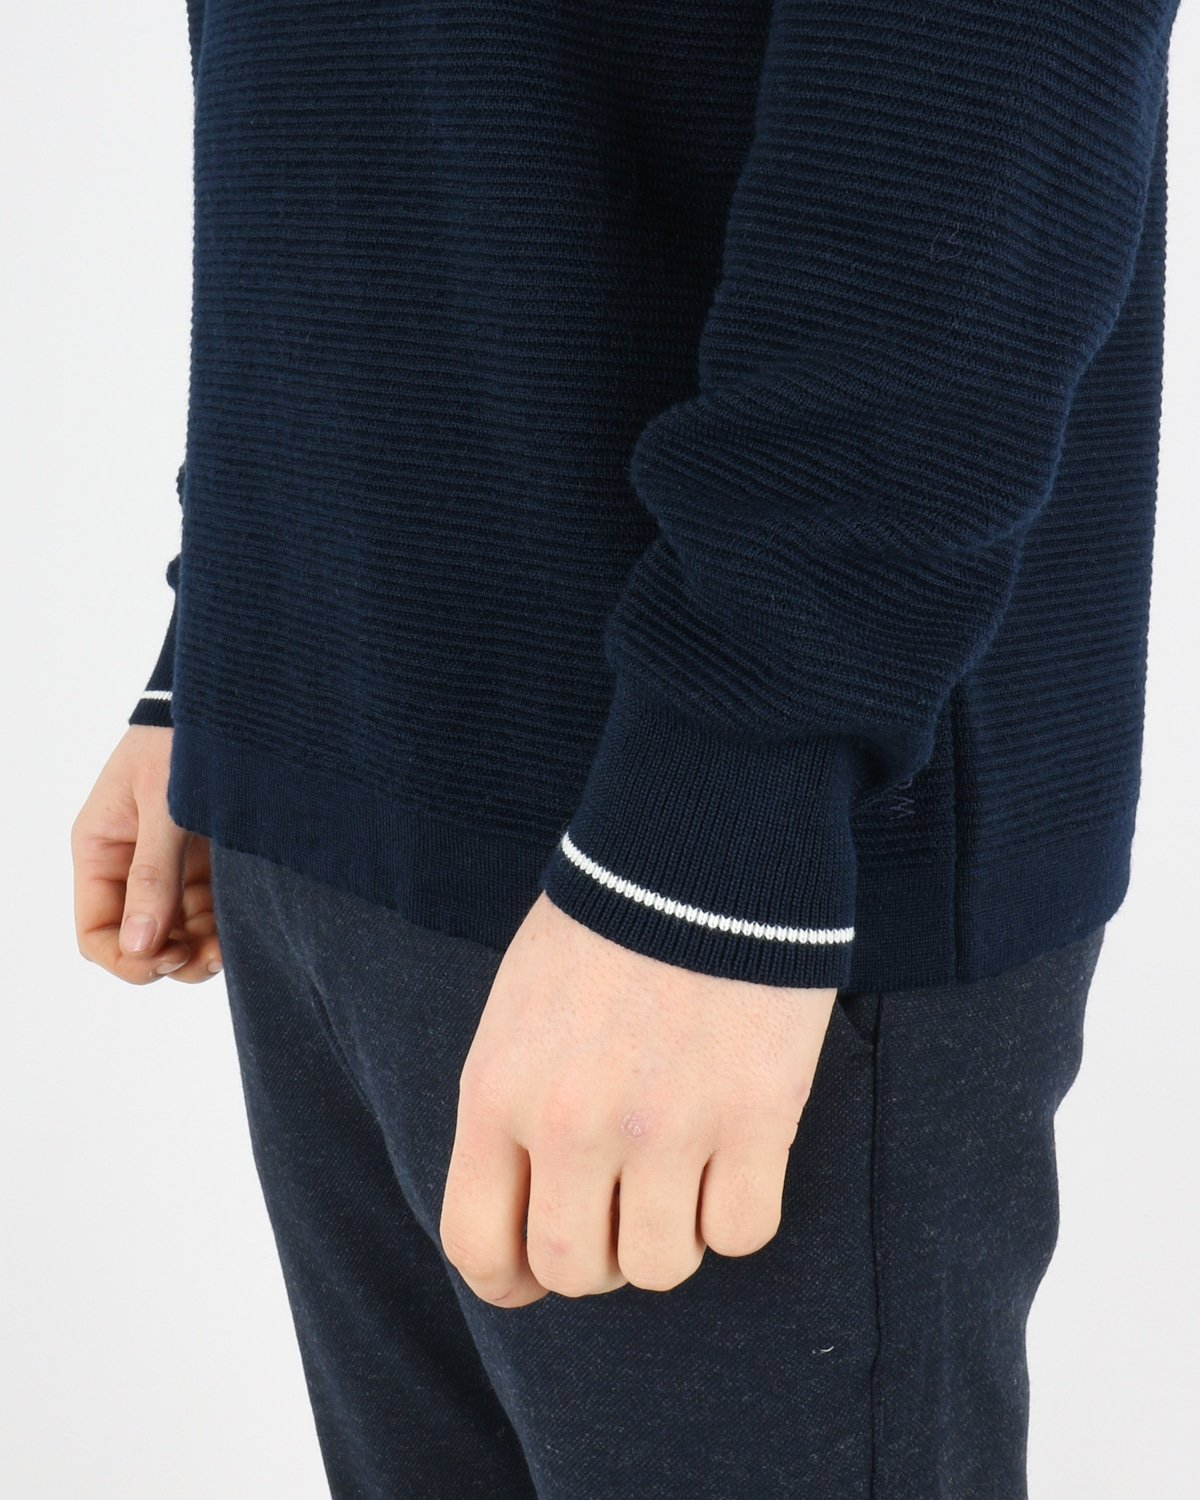 woodbird_craving otto turtle knit_navy_4_4